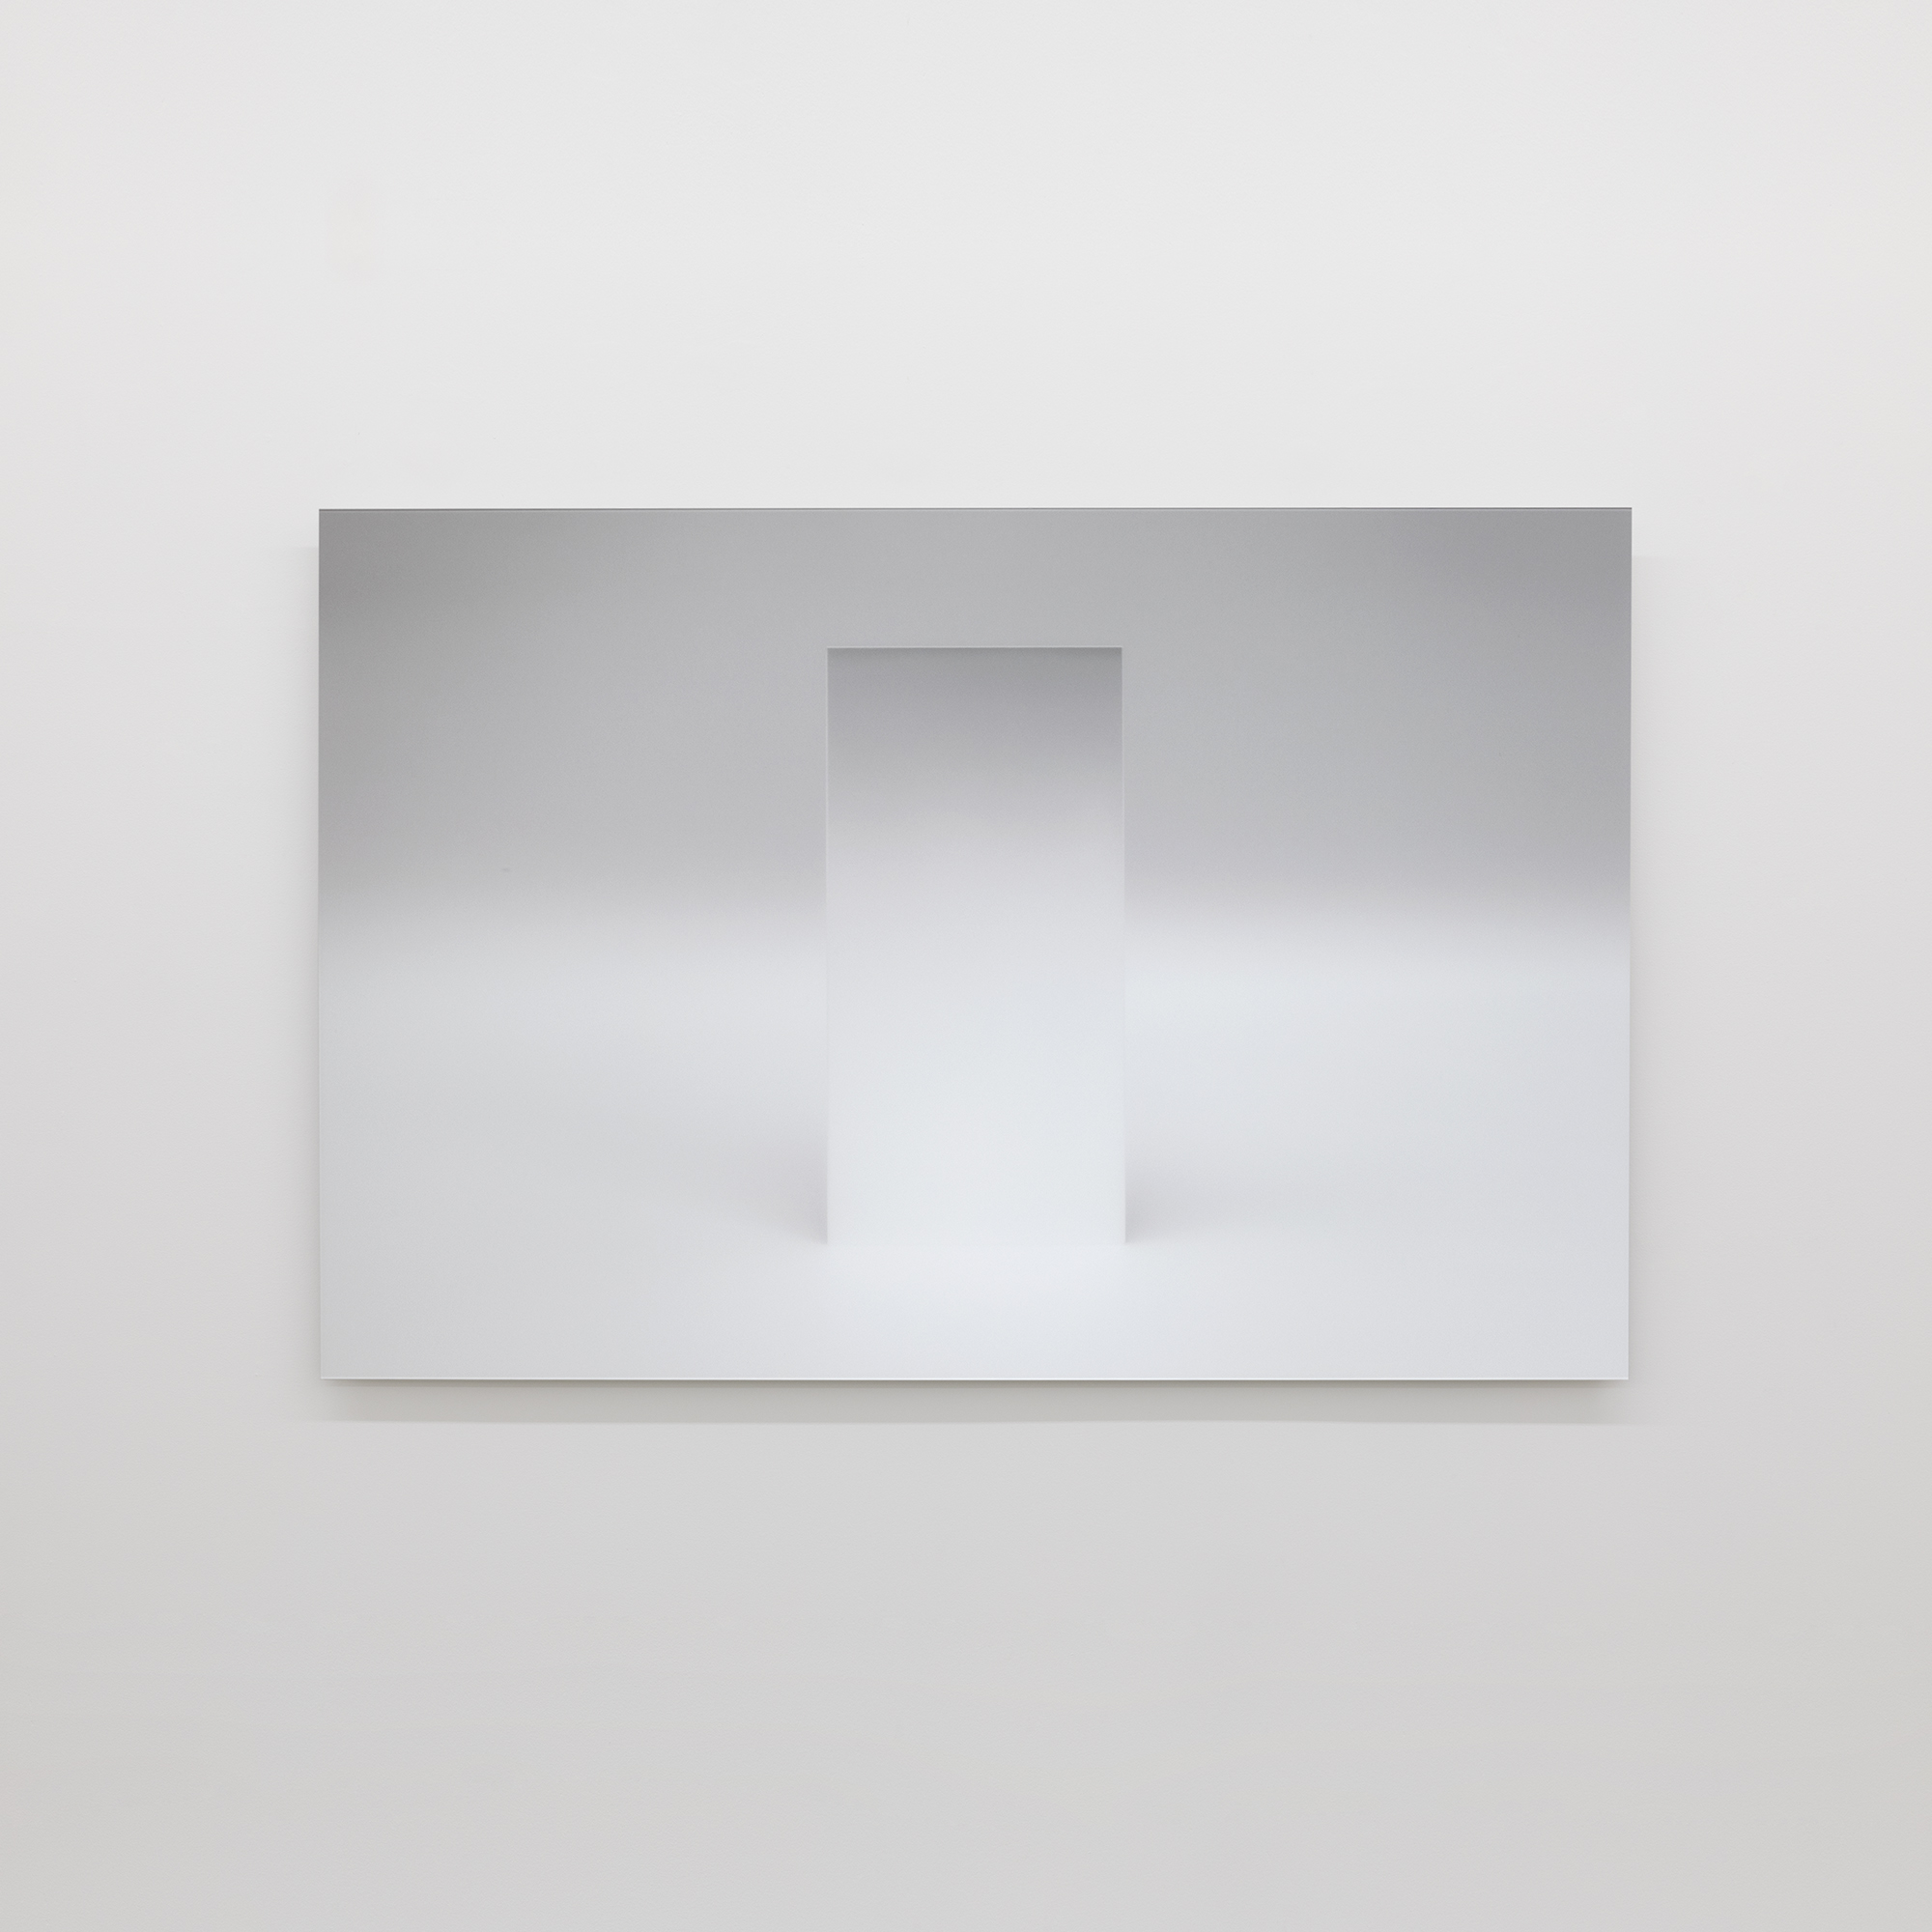 "Caroline Cloutier,  Plénitude , 2017, digital print mounted under plexiglass, 32 x 47"" (82 x 120 cm)"